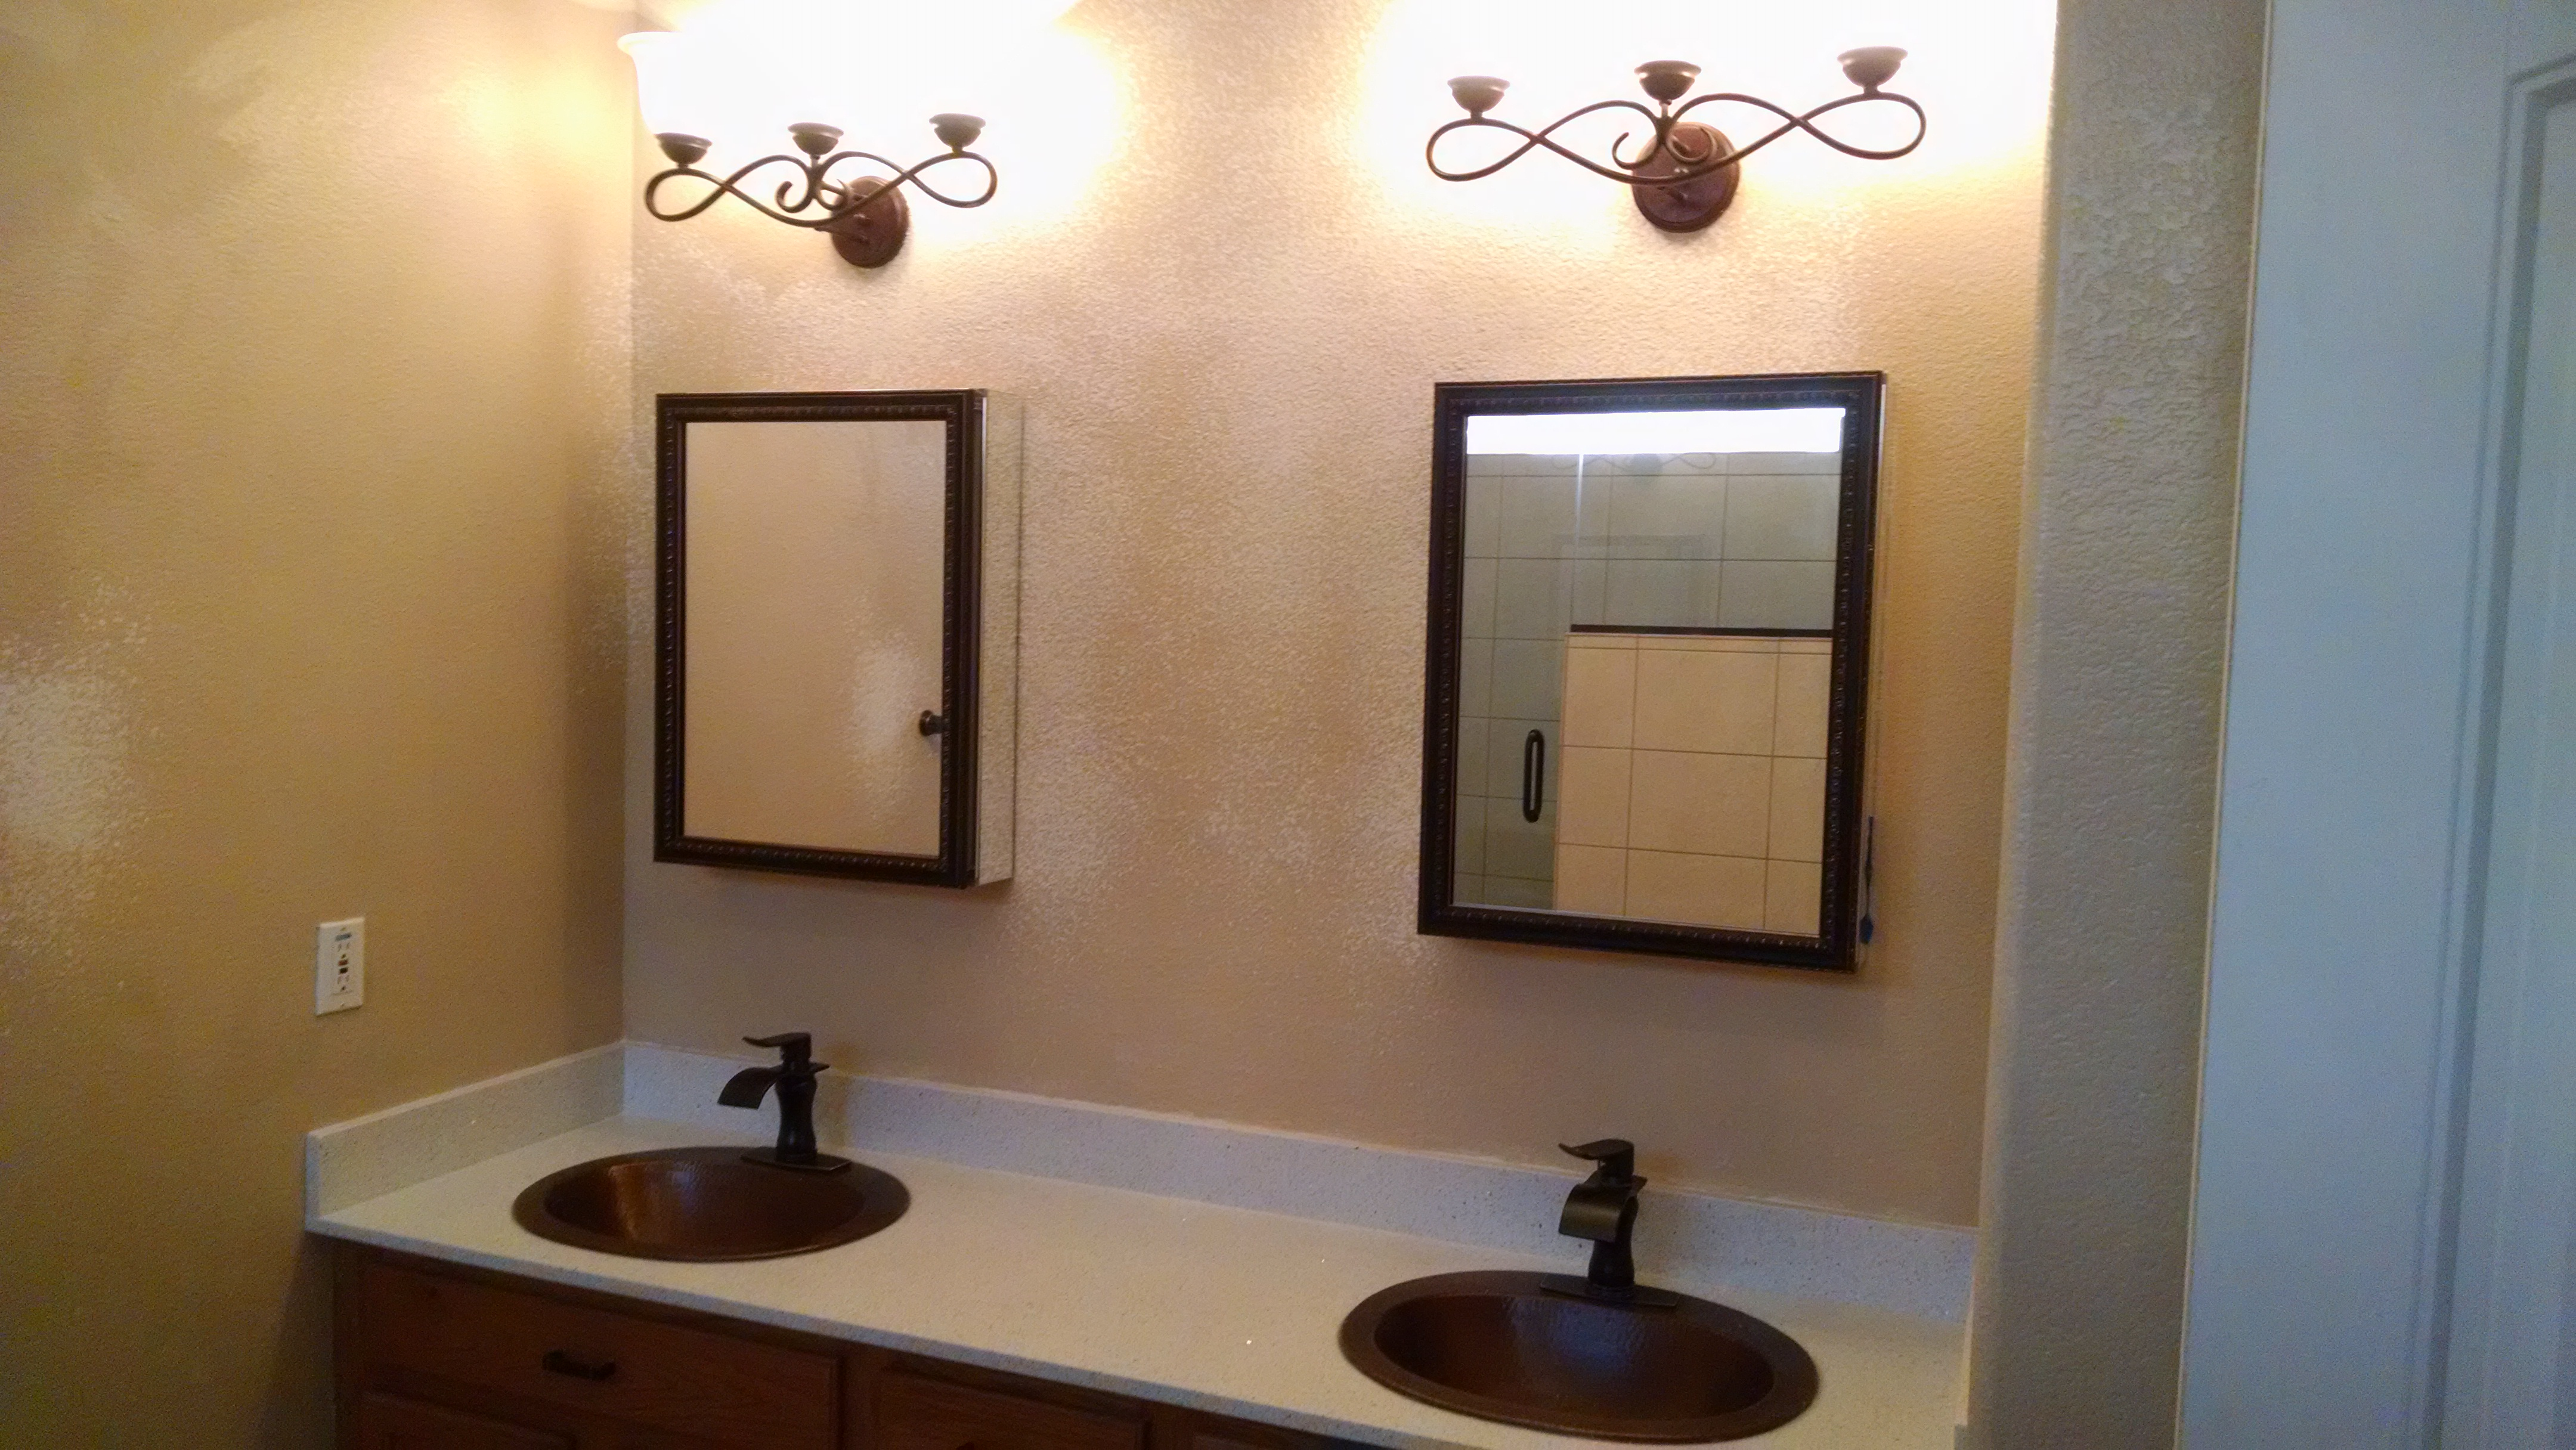 Bathroom Light Fixtures Phoenix home remodeling phoenix - champion remodeling, llc.